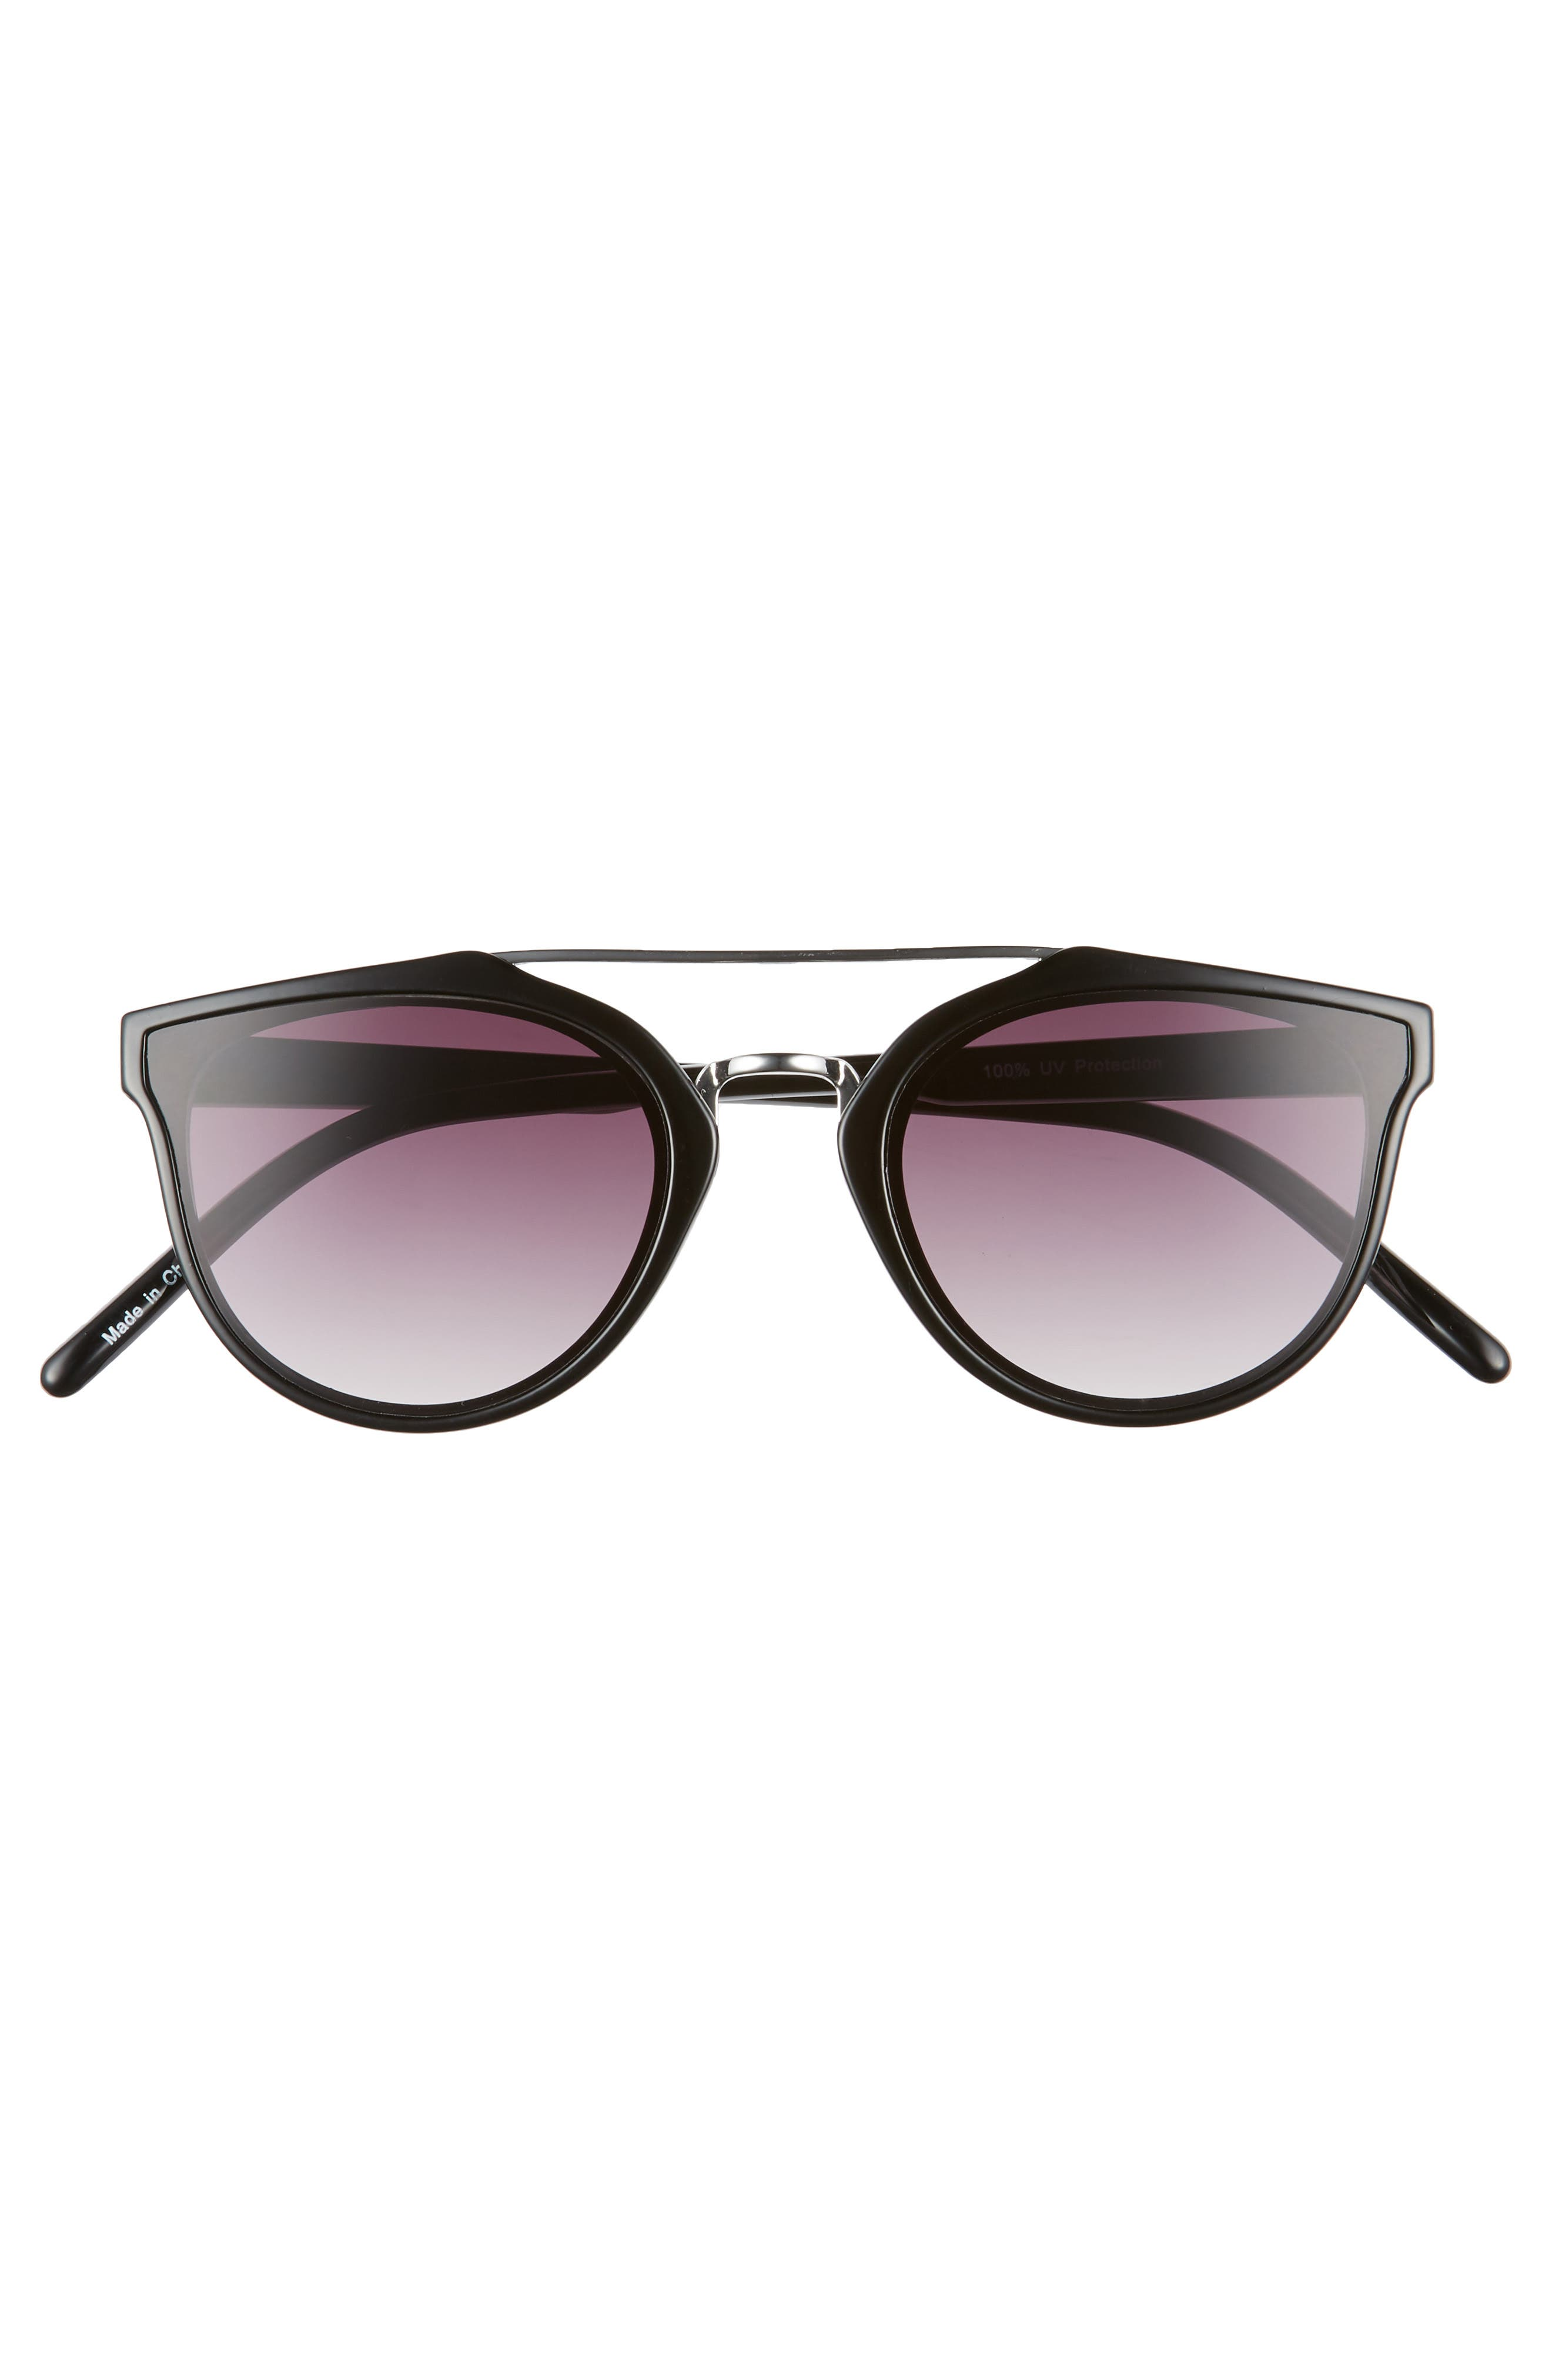 54mm Aviator Sunglasses,                             Alternate thumbnail 3, color,                             001